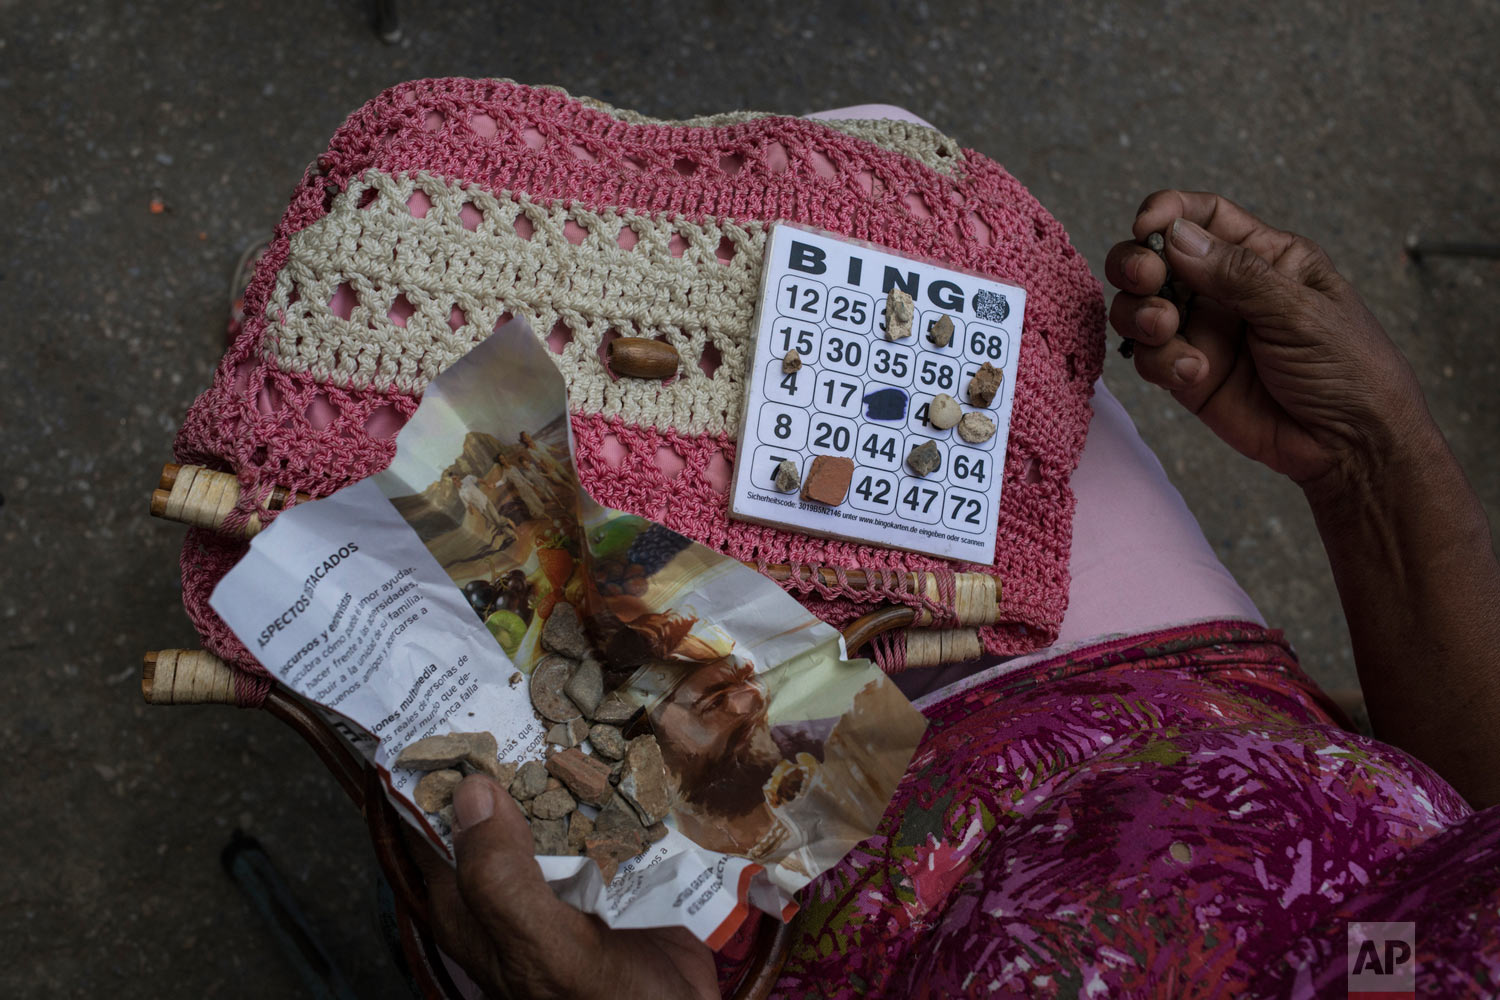 A woman uses pebbles to mark her Bingo card during a Mother's Day block party in Caracas, Venezuela, Sunday, May 19, 2019. (AP Photo/Rodrigo Abd)